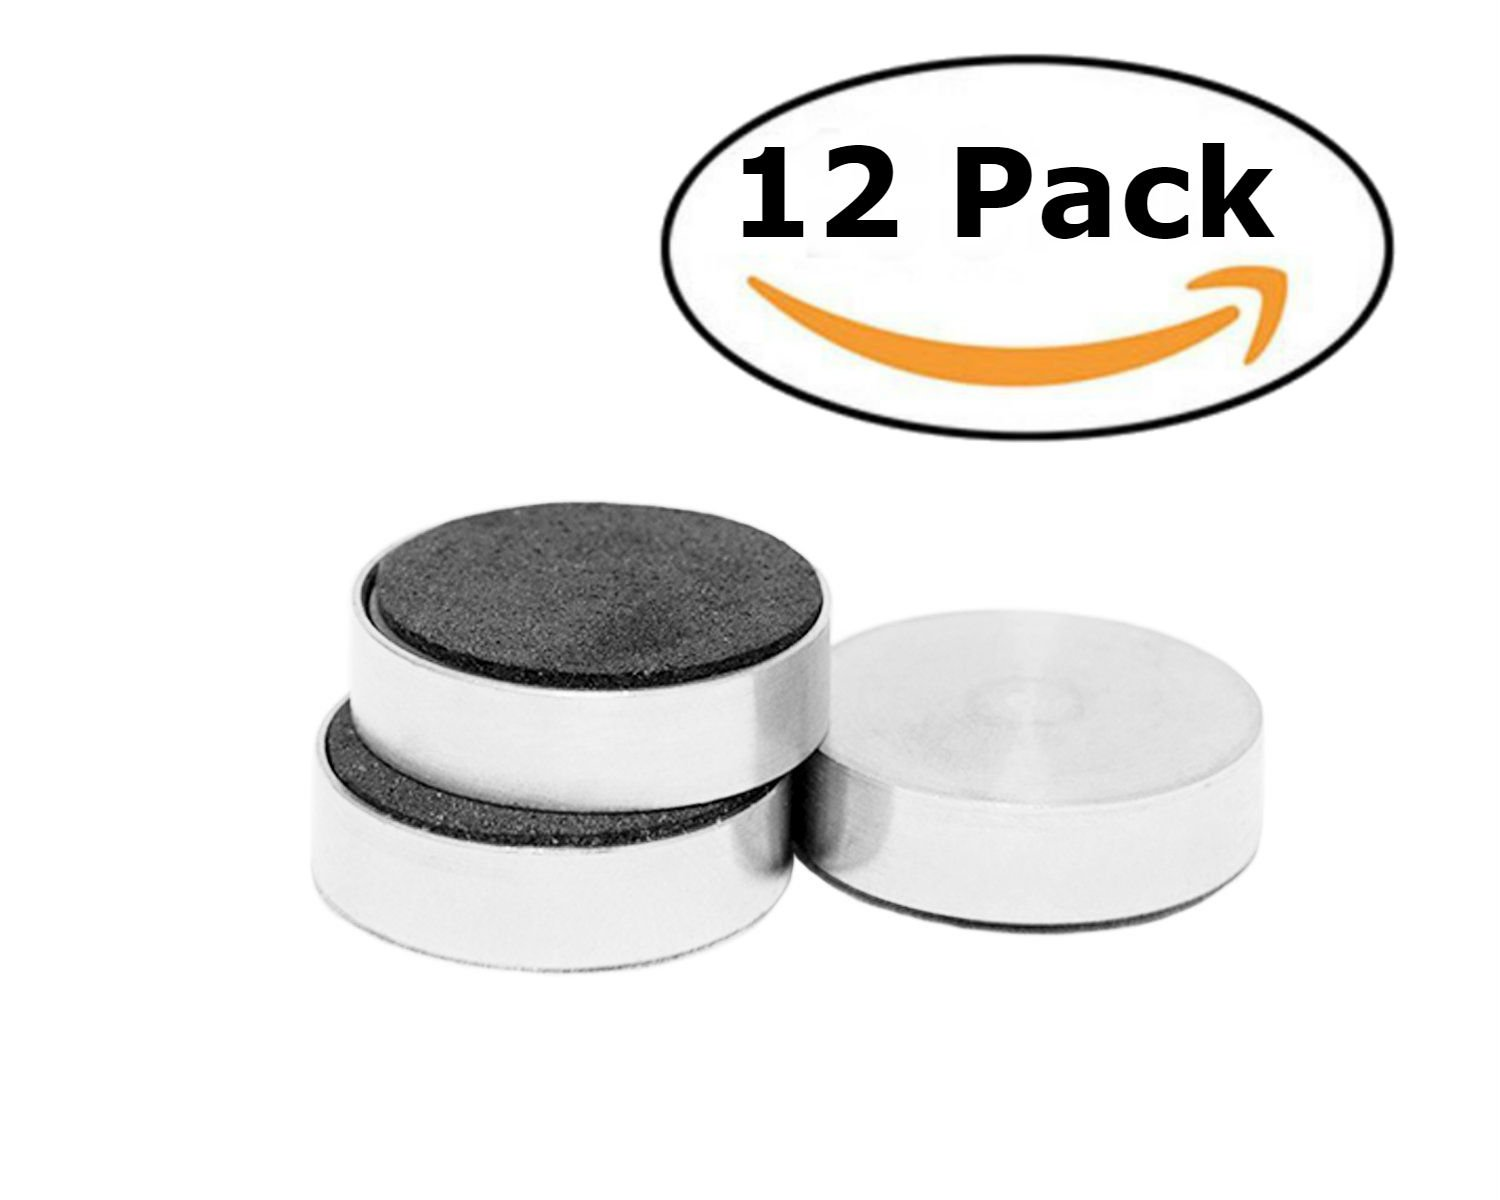 Bullseye Office - Set of 12 Modern Stainless Steel Cased Round Refrigerator Magnets - Perfect Stainless Steel Magnets for Home, Office, Whiteboard Magnets